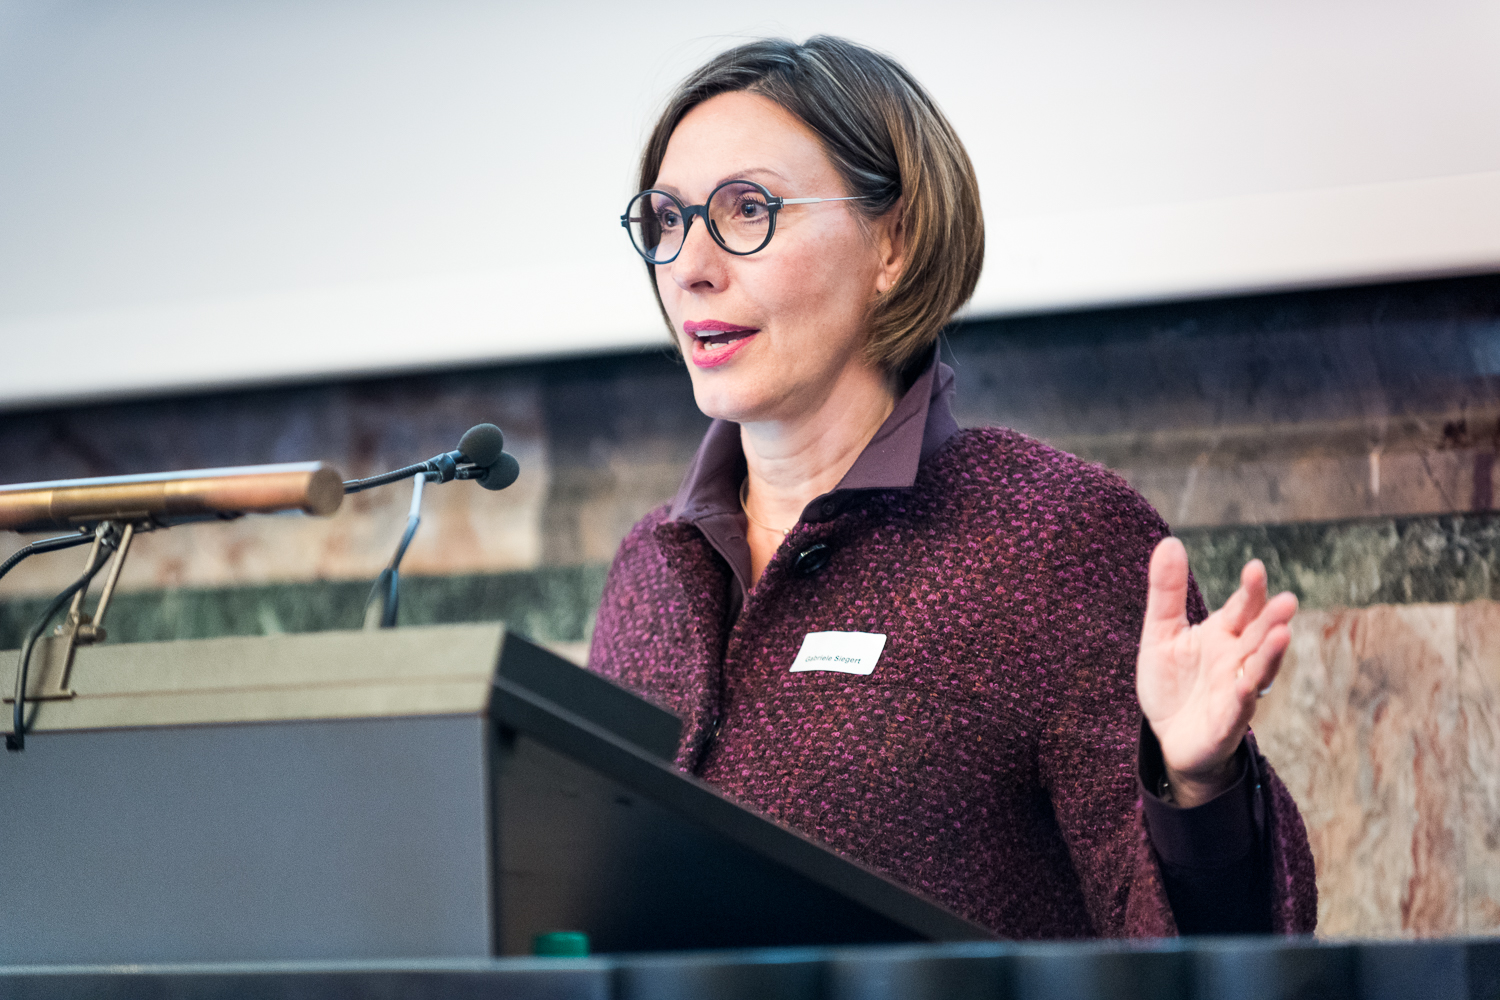 <p>Gabriele Siegert, Vice President Education and Student Affairs, presented innovative teaching projects at UZH. (Image: Frank Br&uuml;derli)</p>